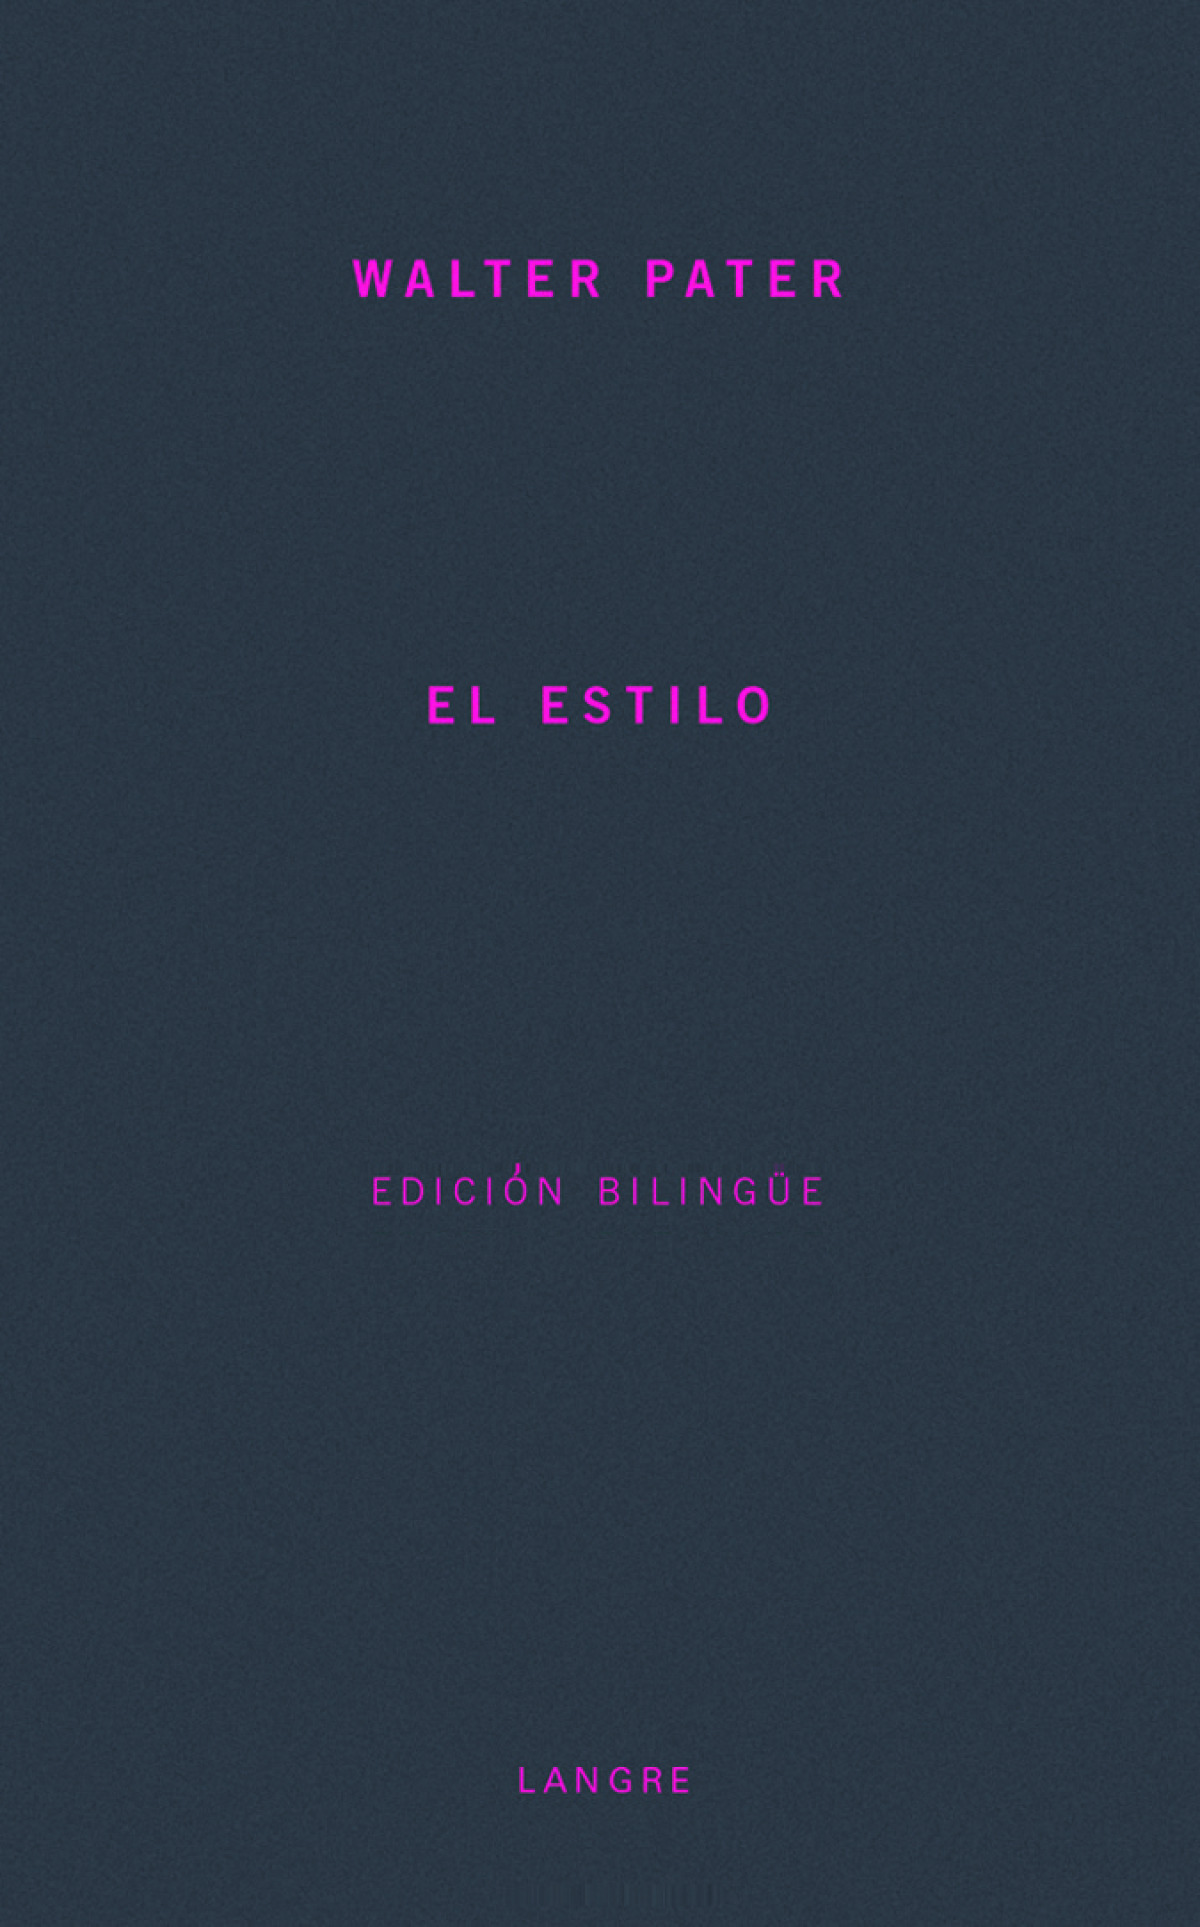 Bosque sagrado, el - Eliot, T.S.